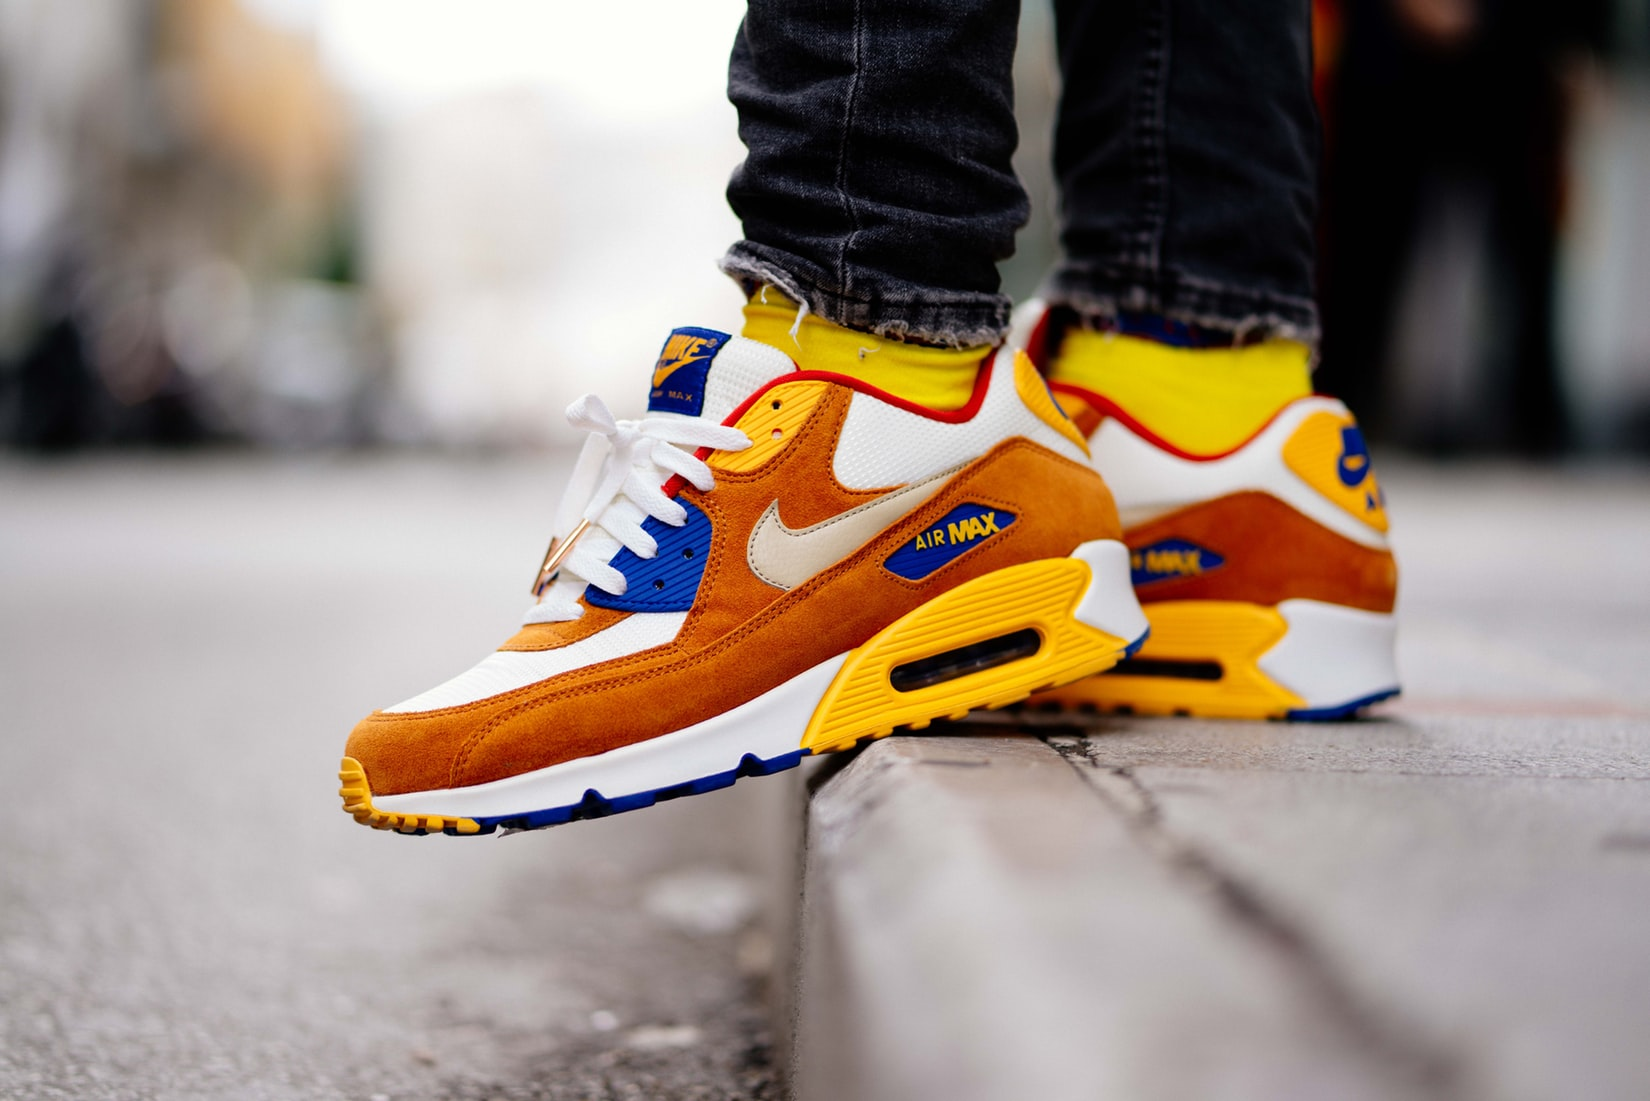 Air max 90 PREMIUM Curry